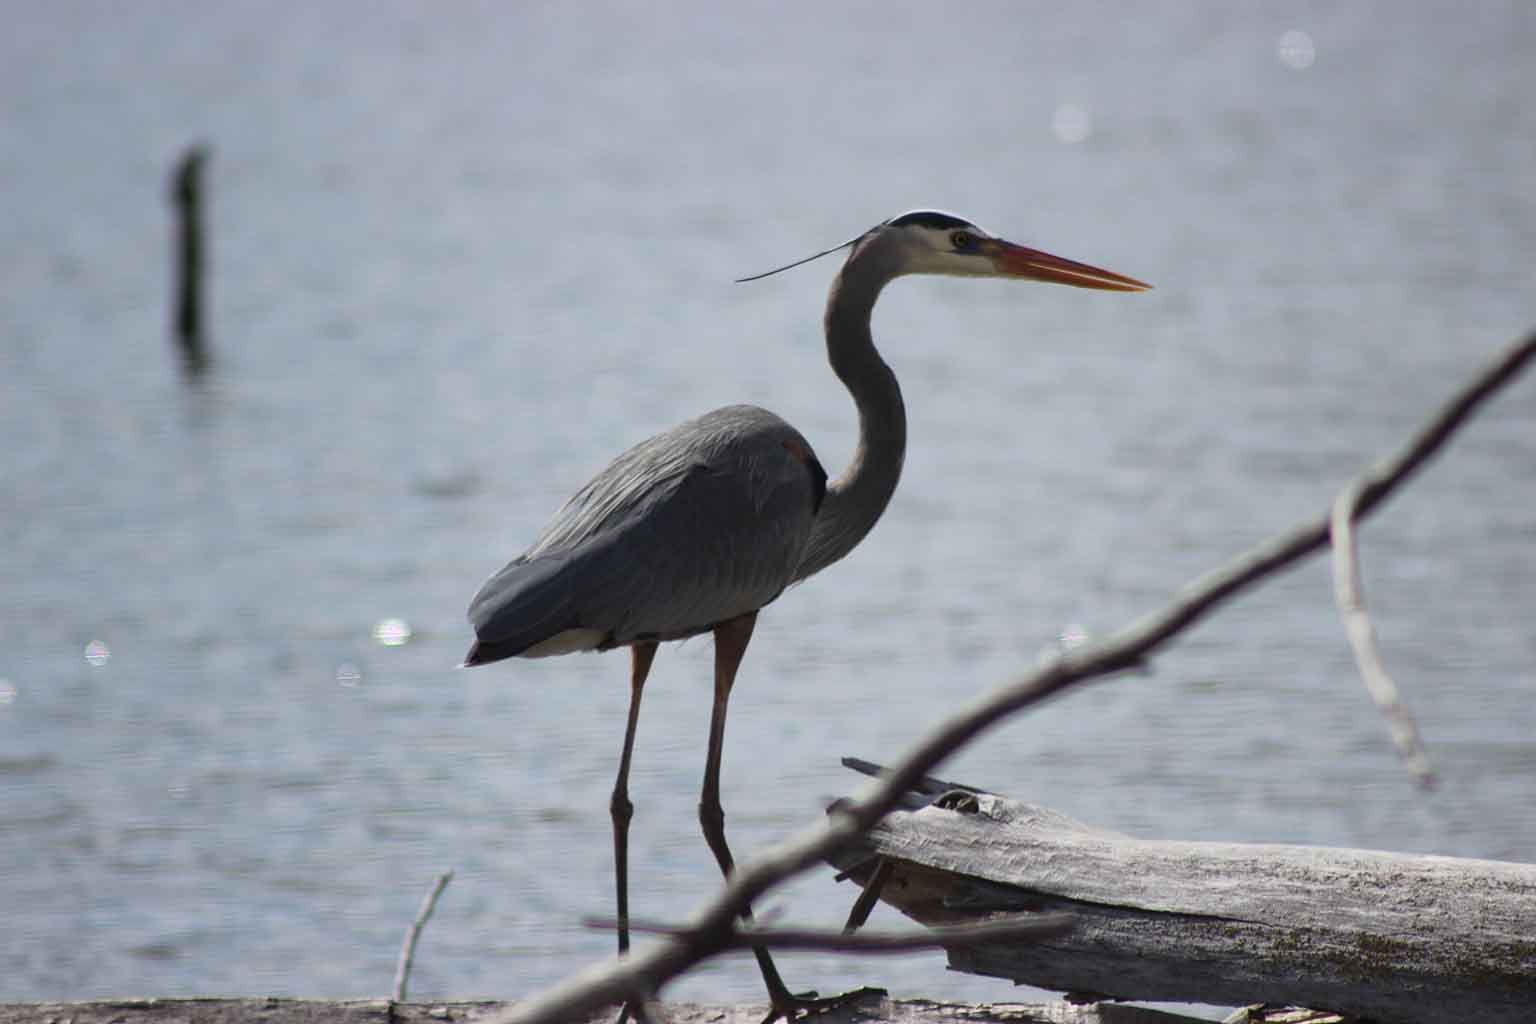 A blue heron stands at the water's edge